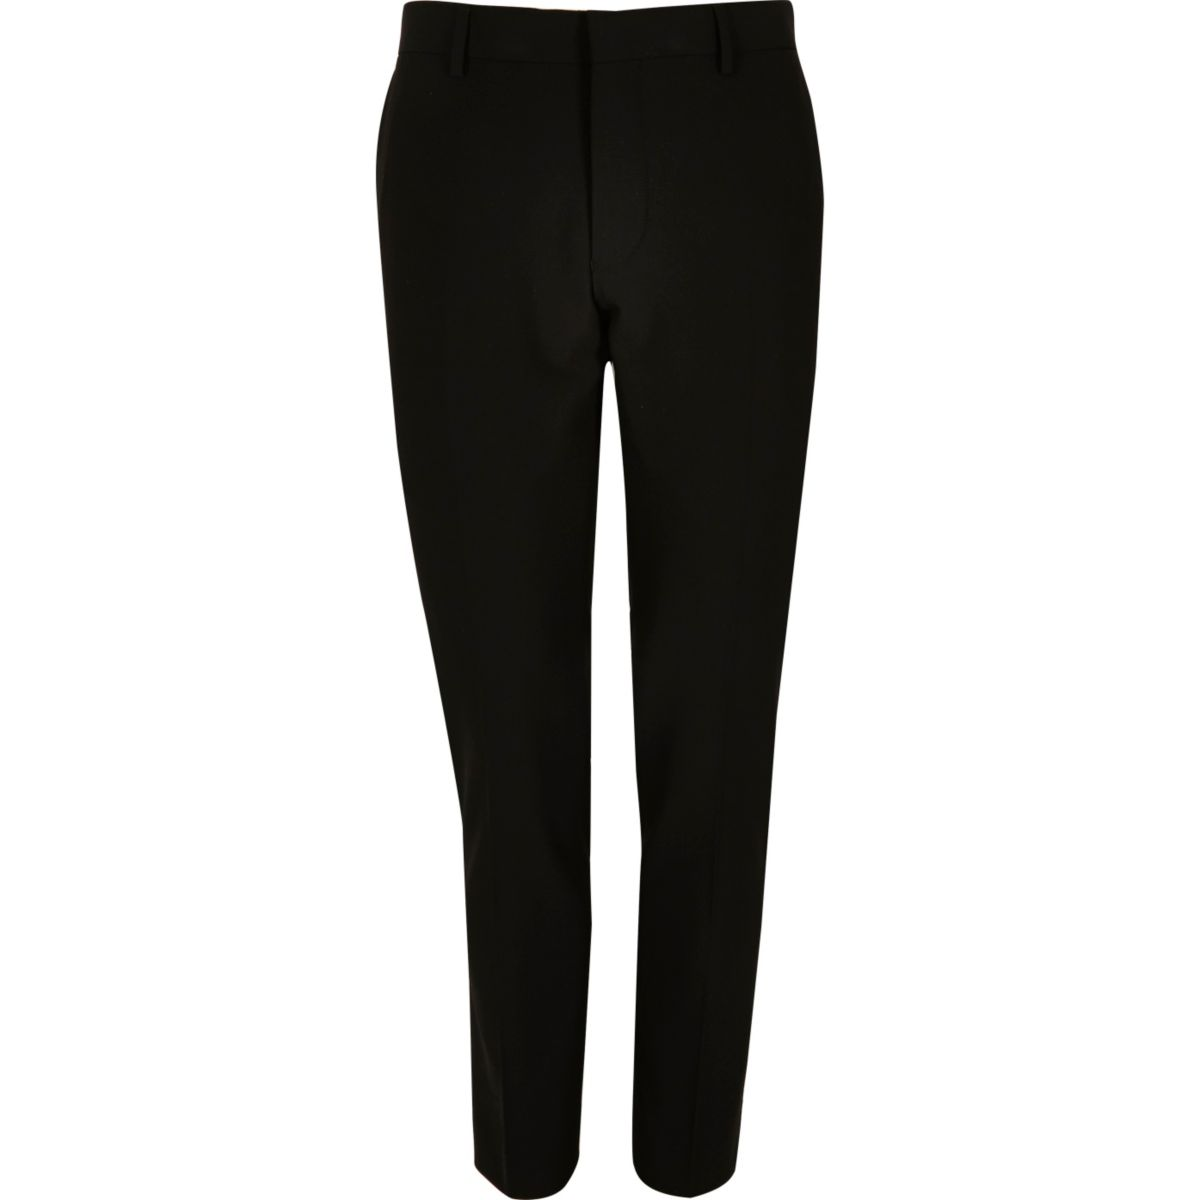 Black super skinny suit trousers